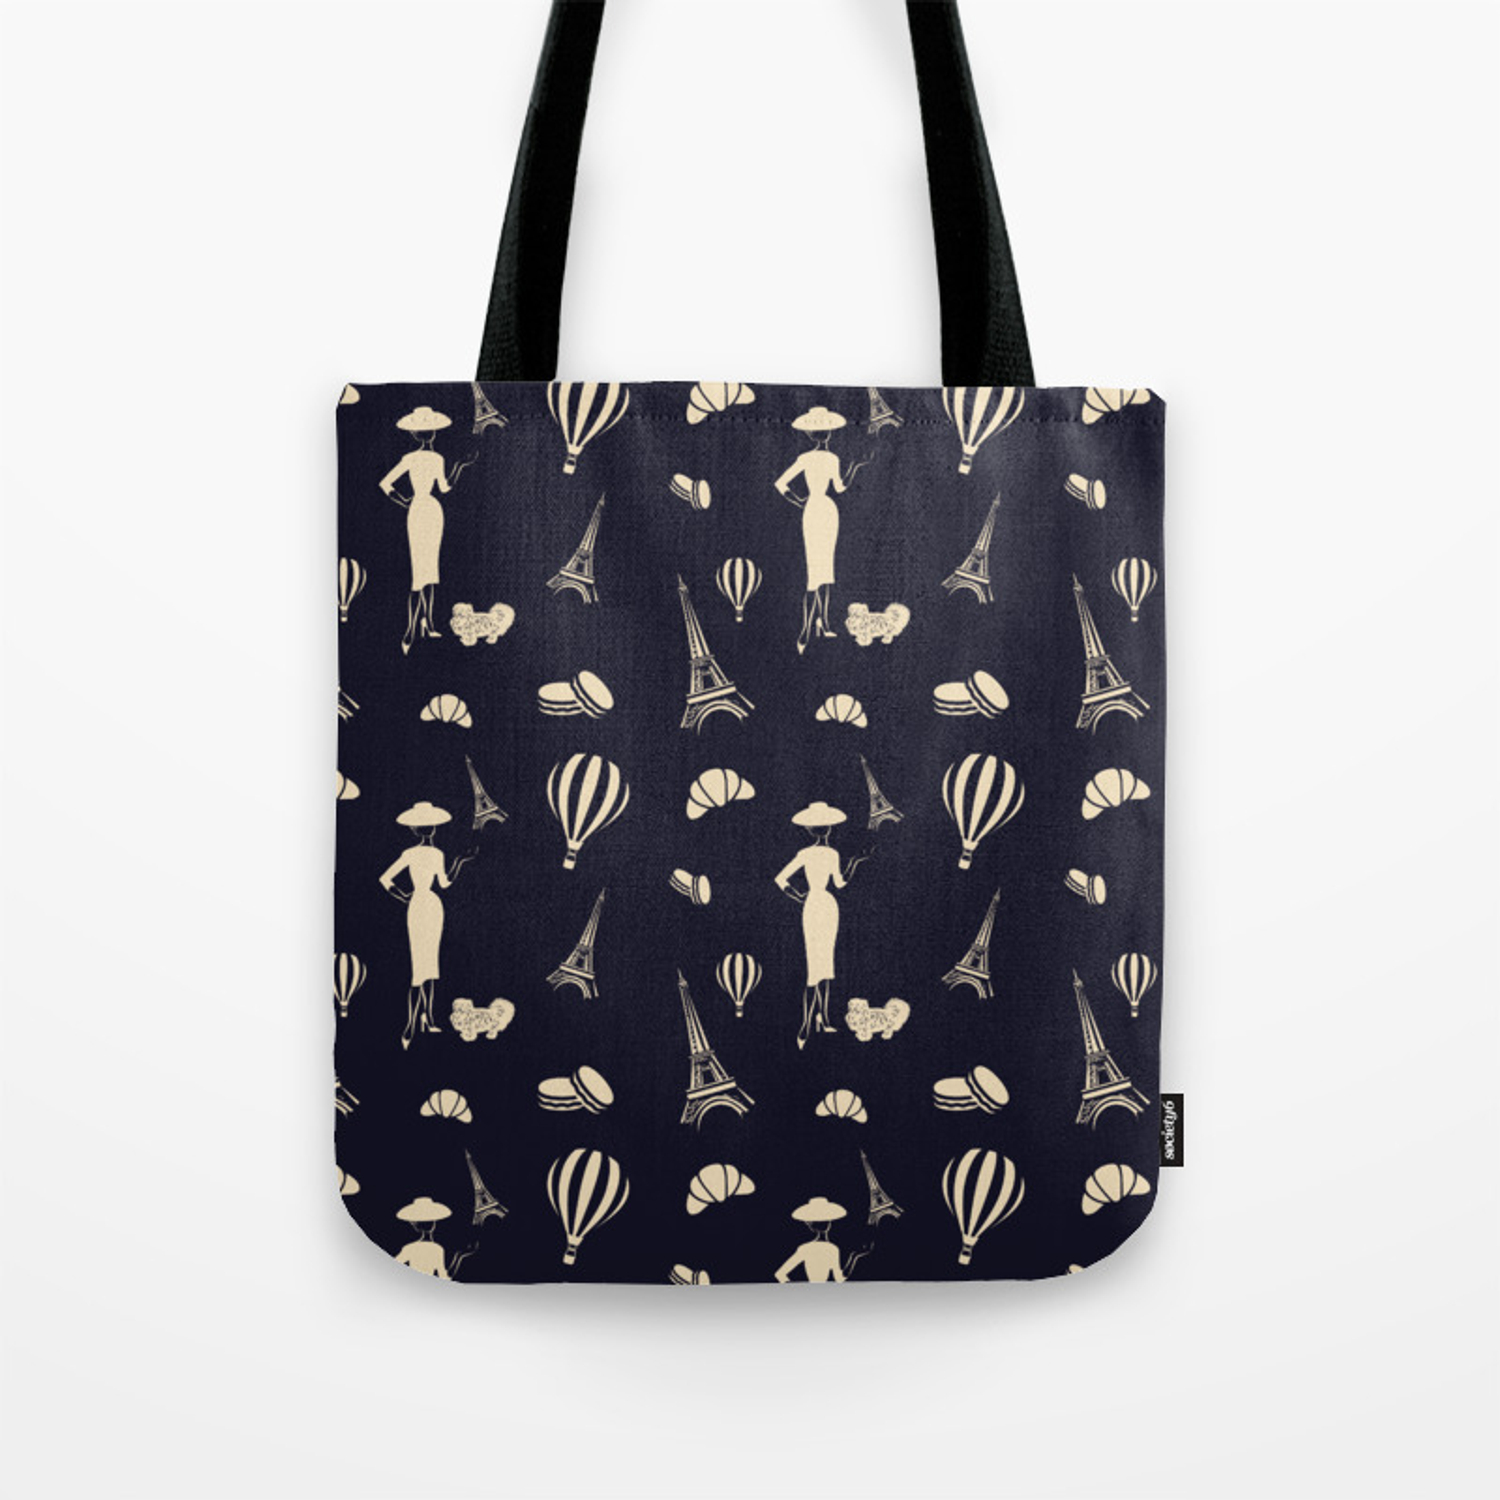 coupon codes to buy how to buy The 1950s New Look Paris Pattern Tote Bag